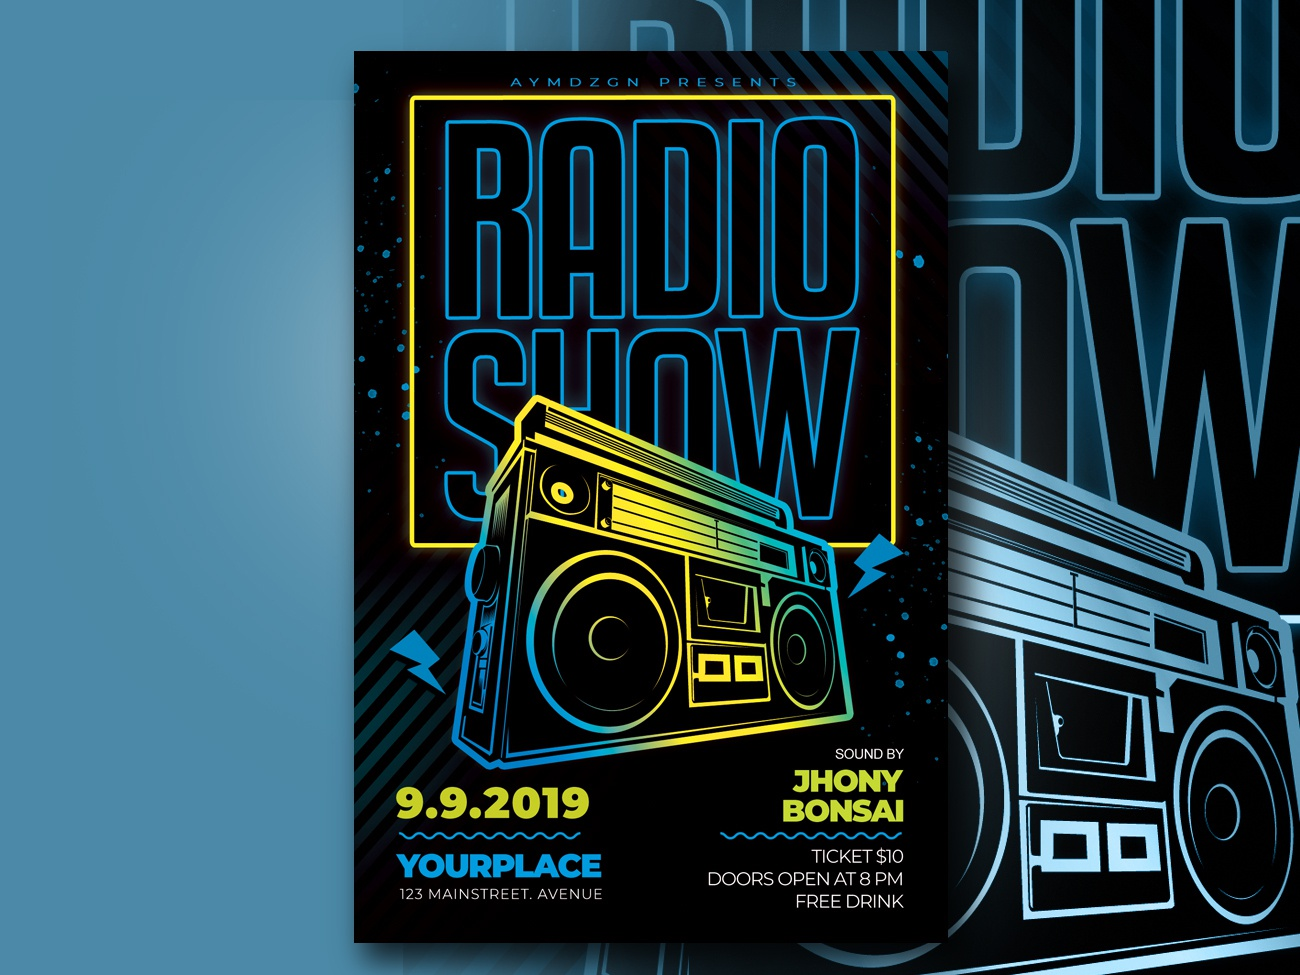 Radio Show Flyer Template by AyumaDesign on Dribbble